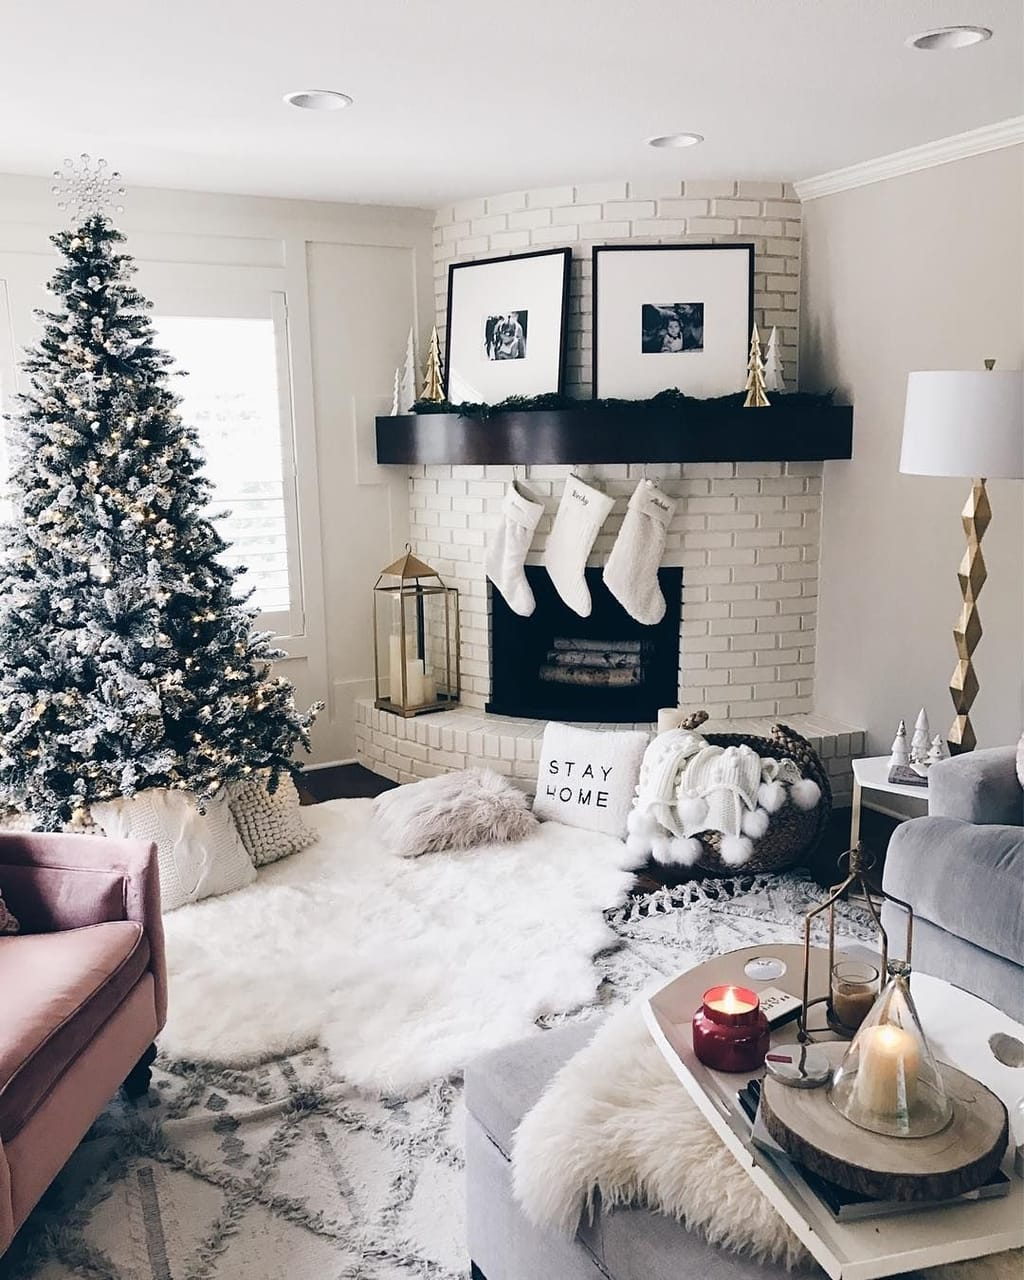 Christmas Ideas Living Room And Decor Image 6650334 On Favim Com